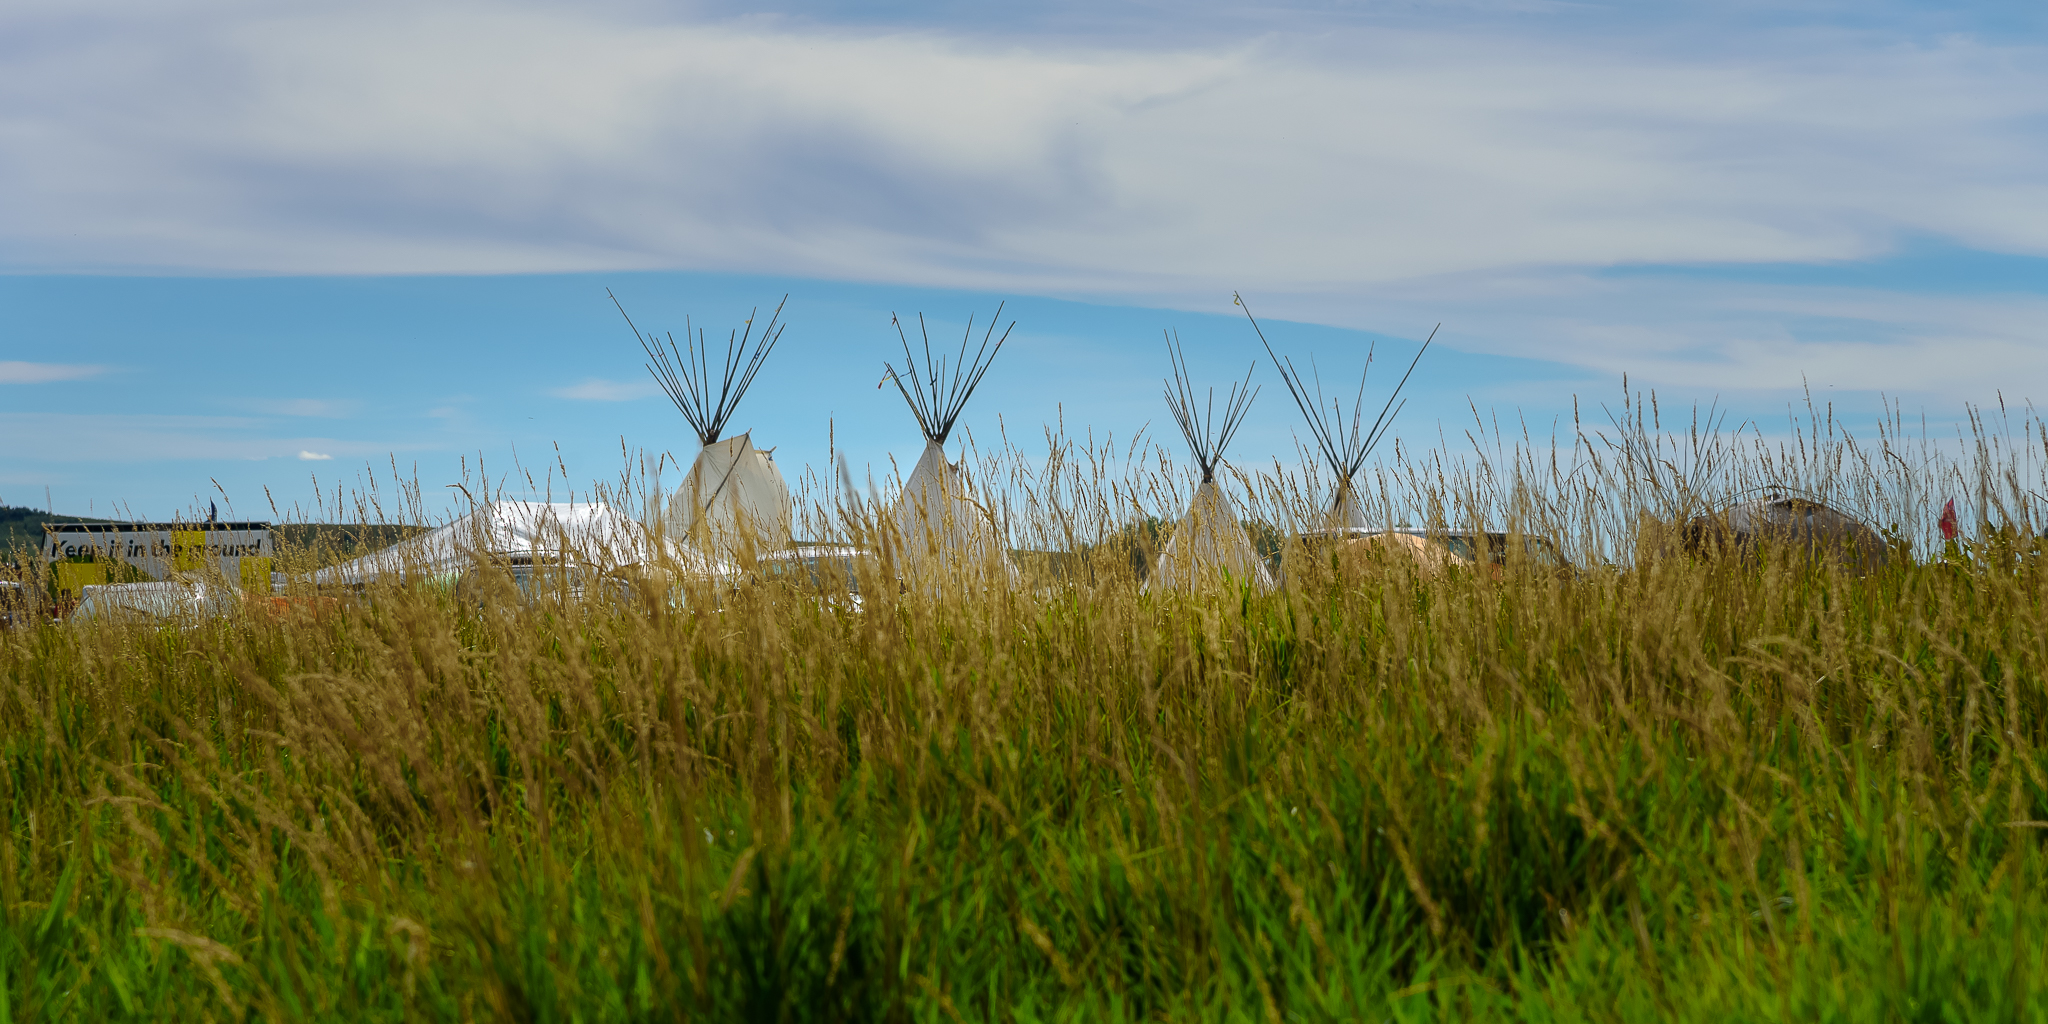 Teepees sprouted from the ground as effortlessly as the tall grass surrounding them. Standing Rock Reservation Area, ND.